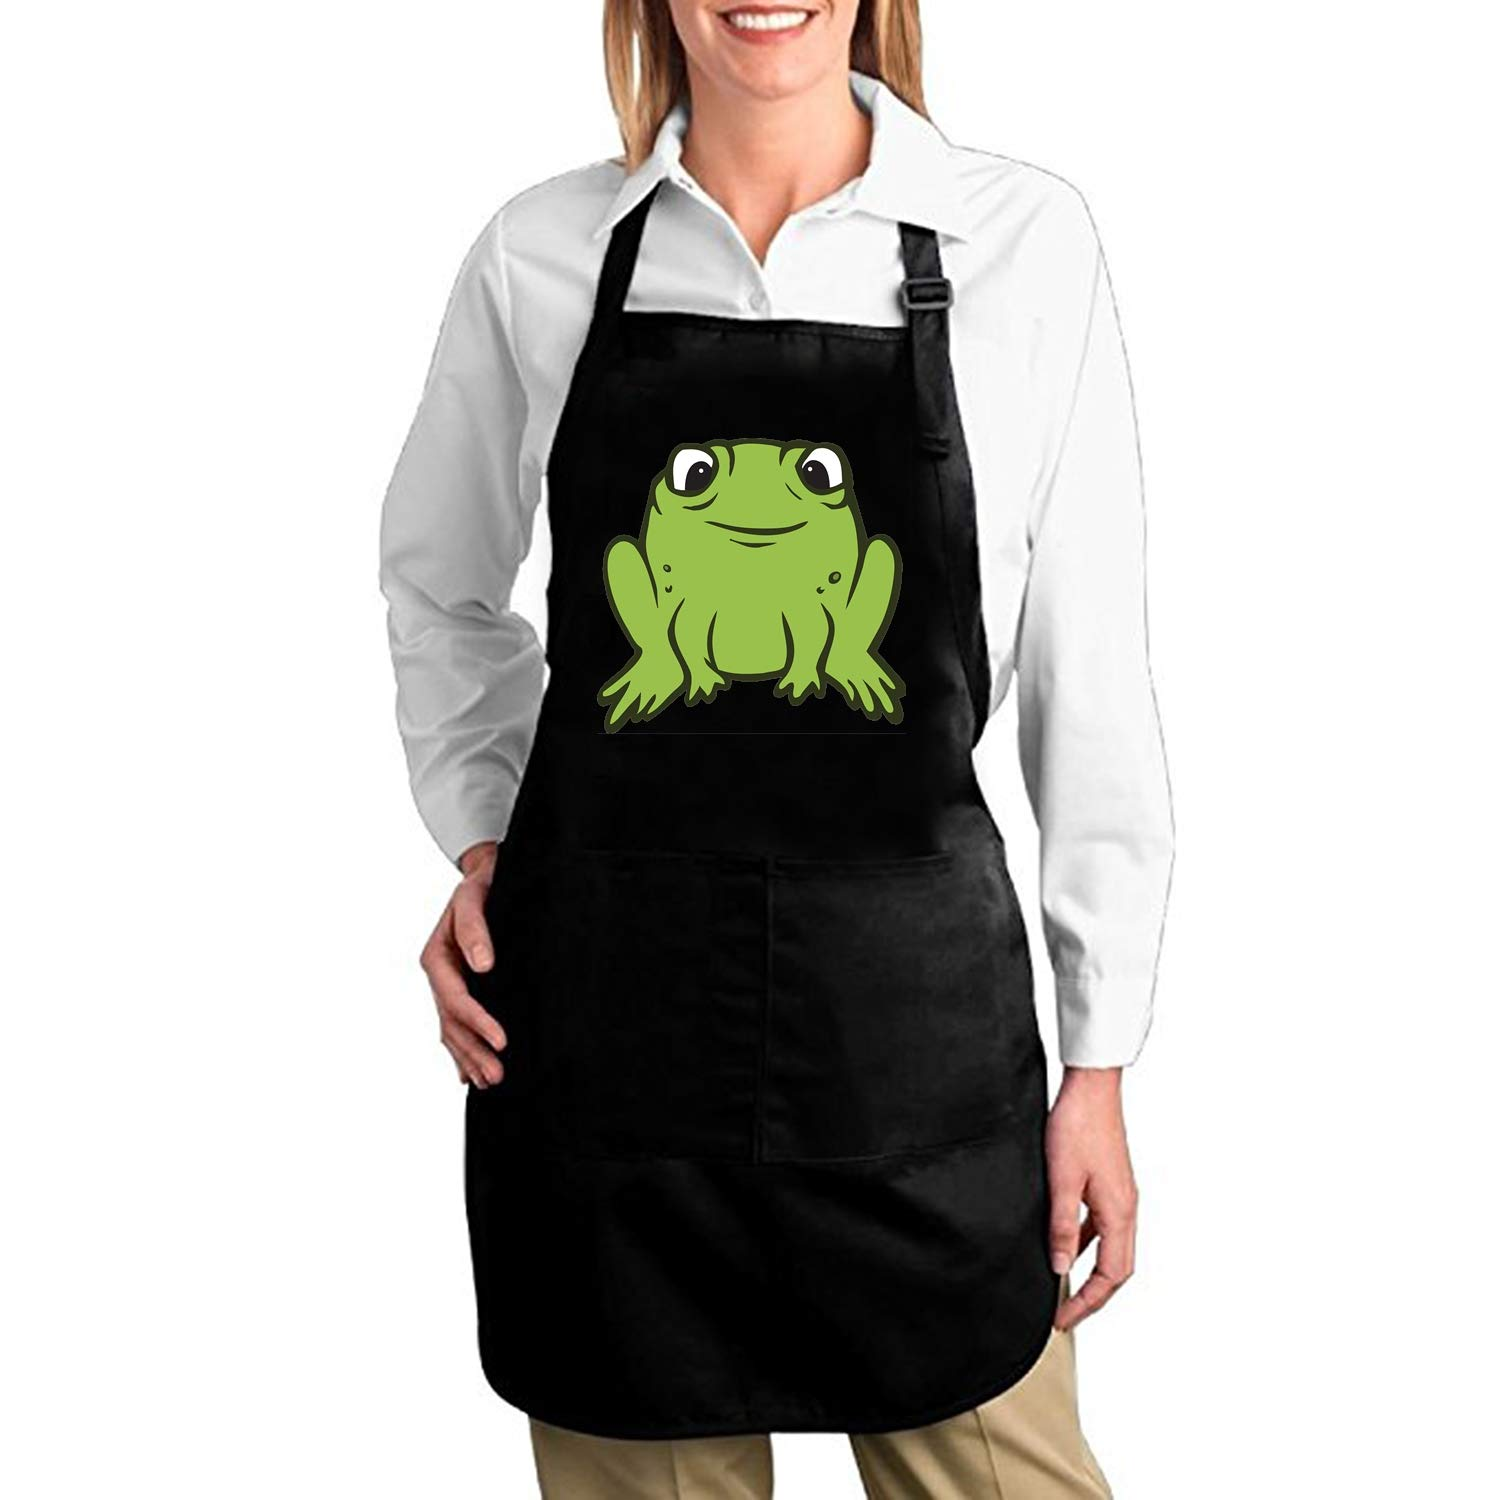 Amazon.com: aportt Ninja-Frog Adjustable Apron for Kitchen ...